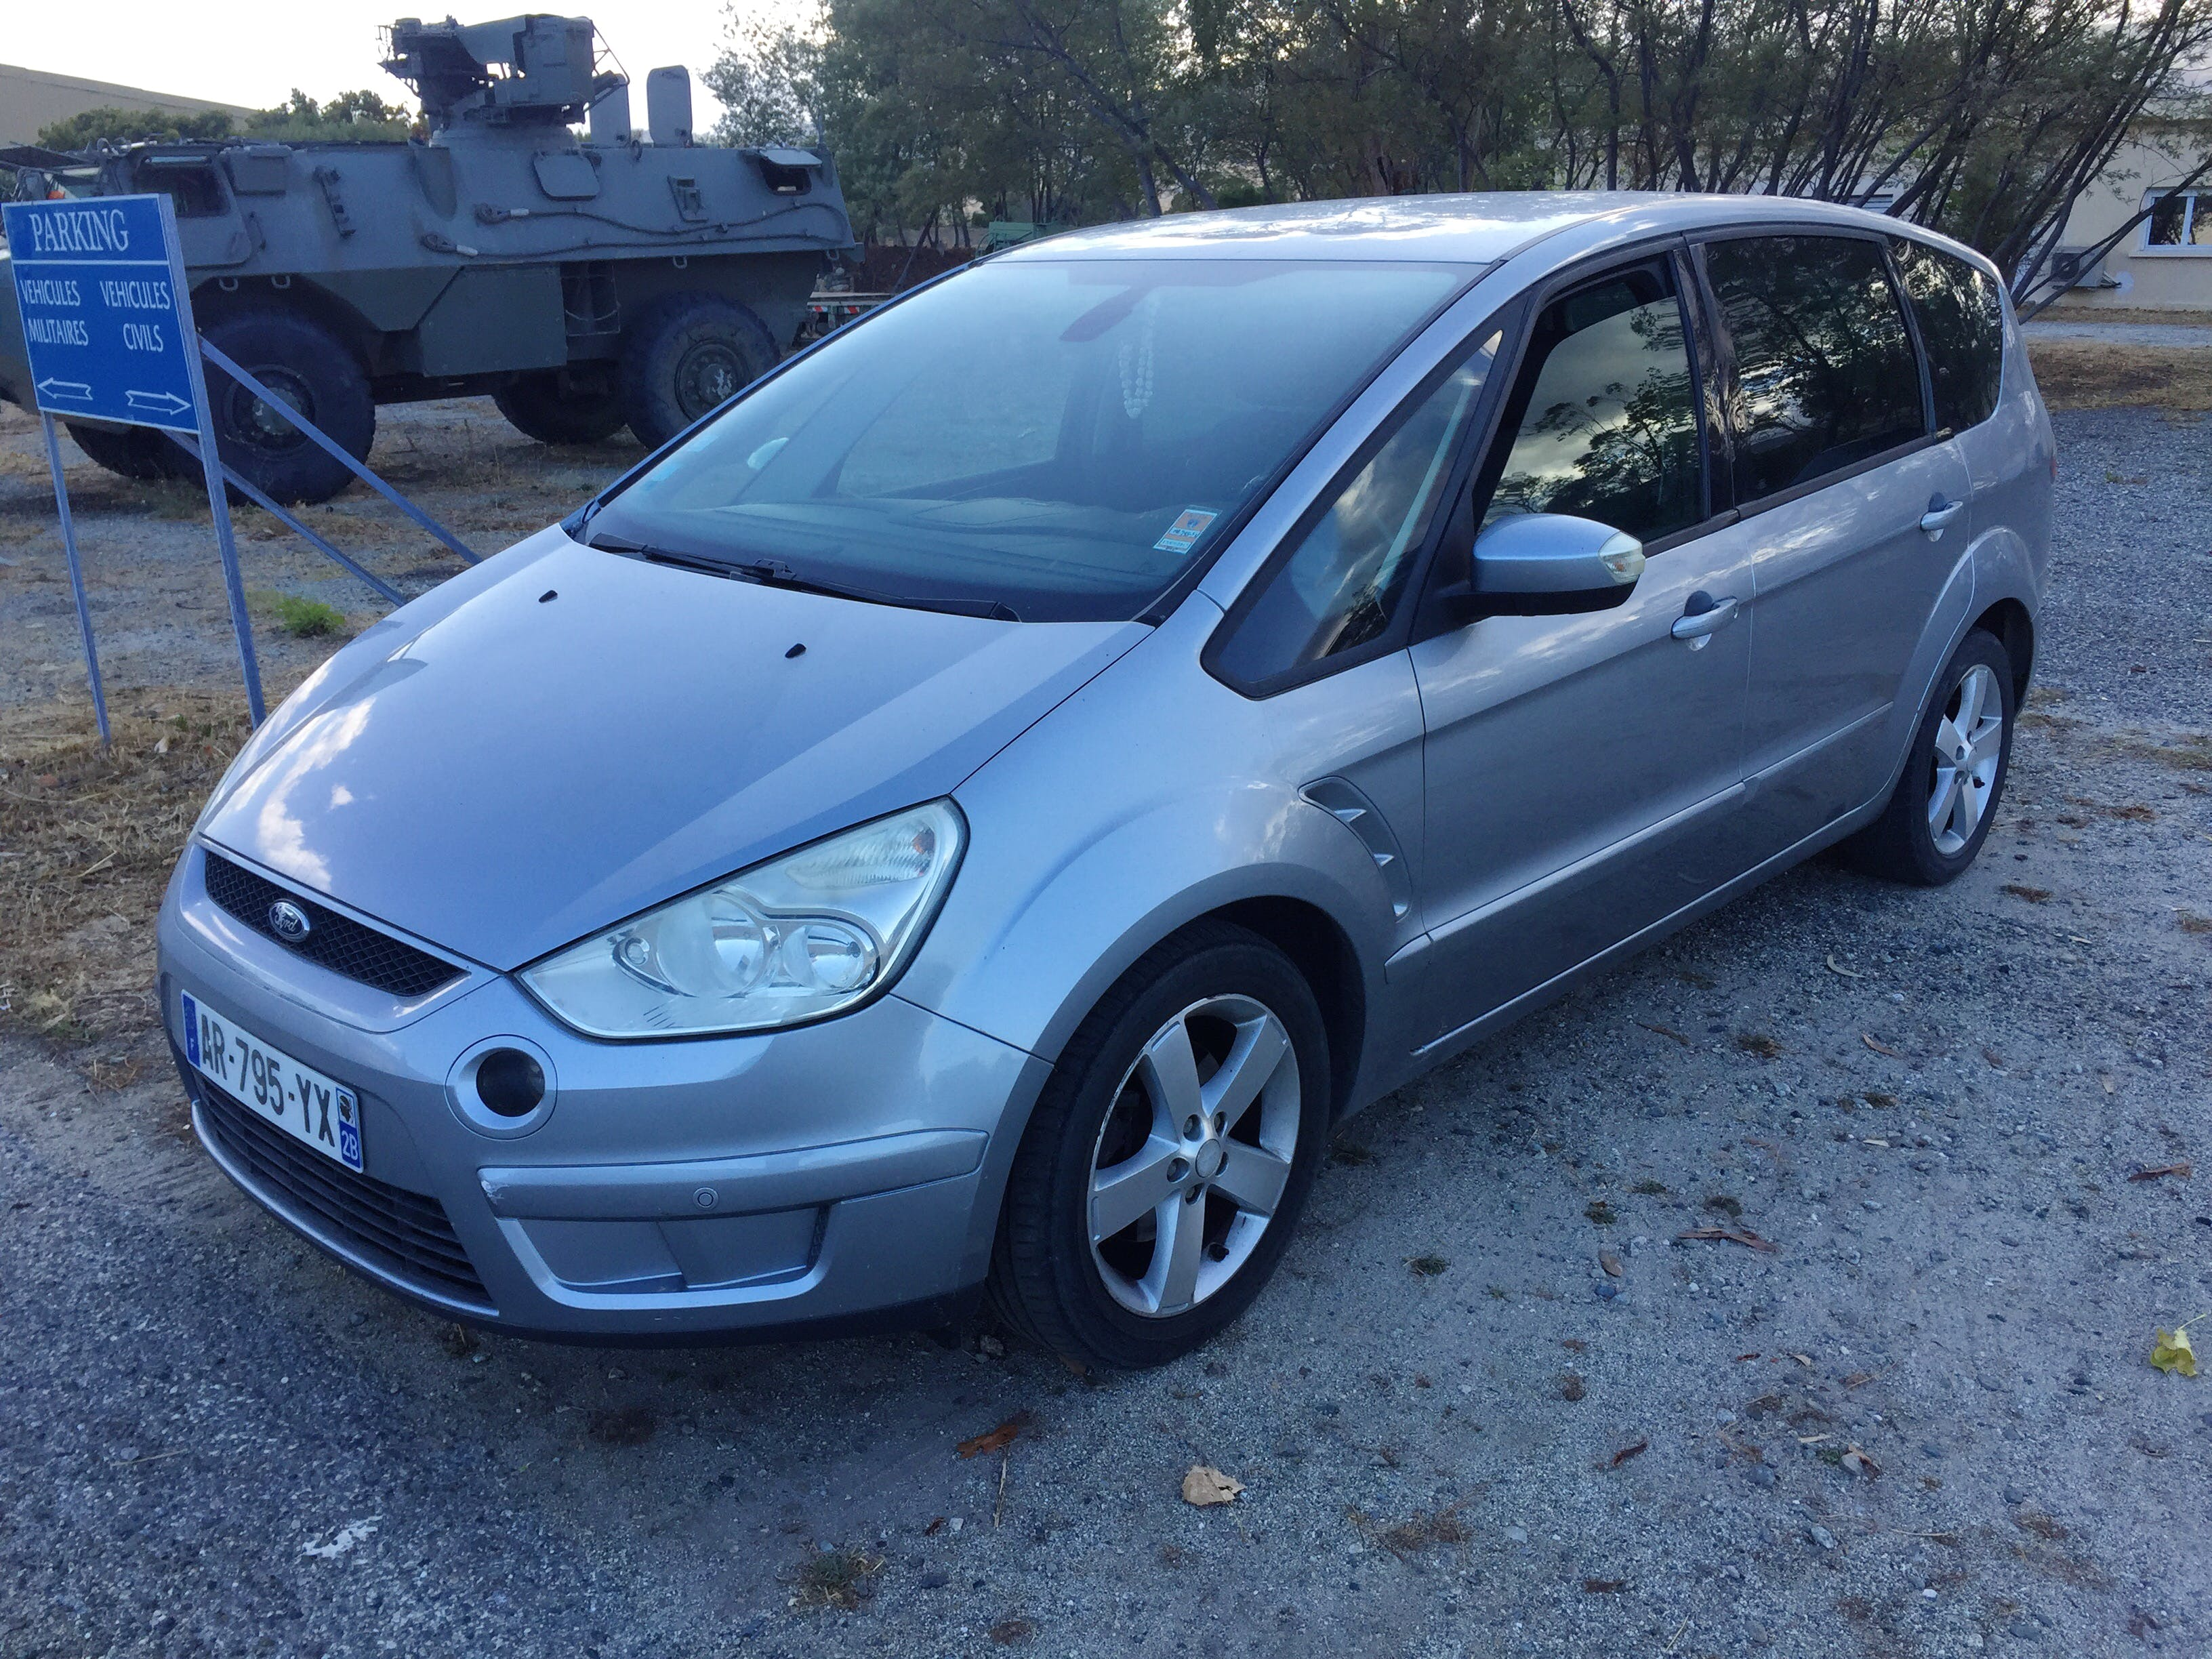 Ford S-Max 1.8 tdci, 2006, Diesel, 6 places